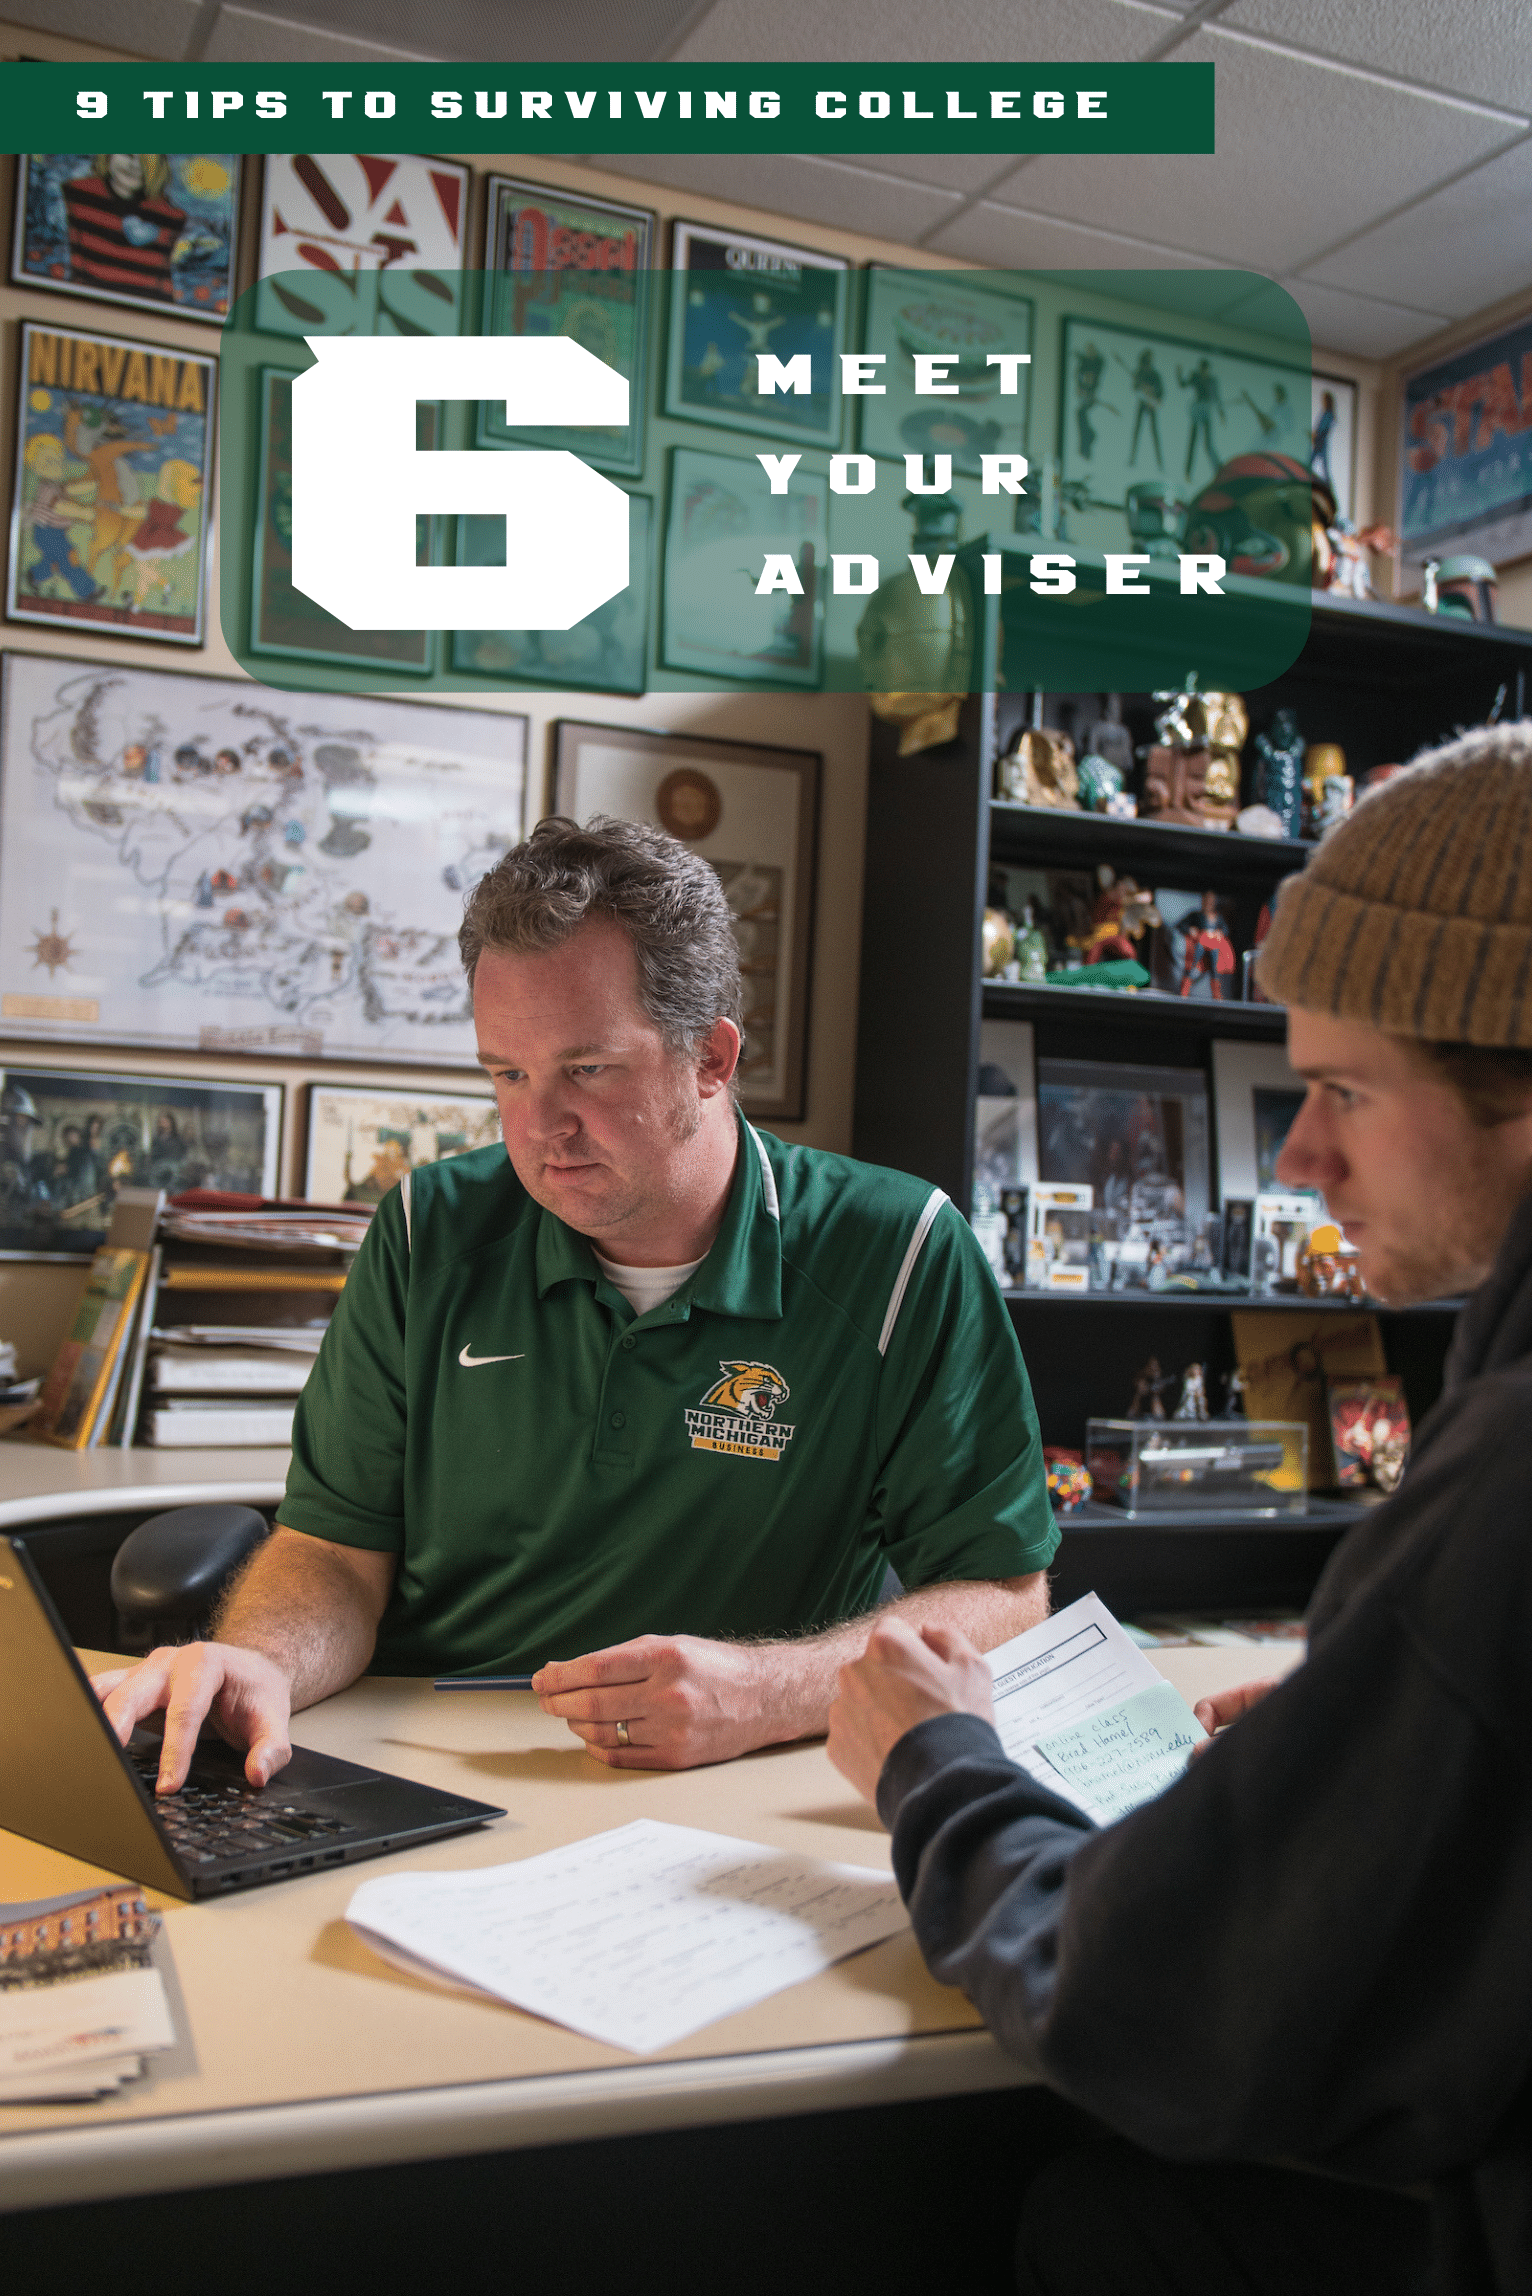 The Nmu Community Works Together With A Common Goal In Mind To Provide A Quality Education And Supportive Environment For Ou Faculty And Staff Student Advisor